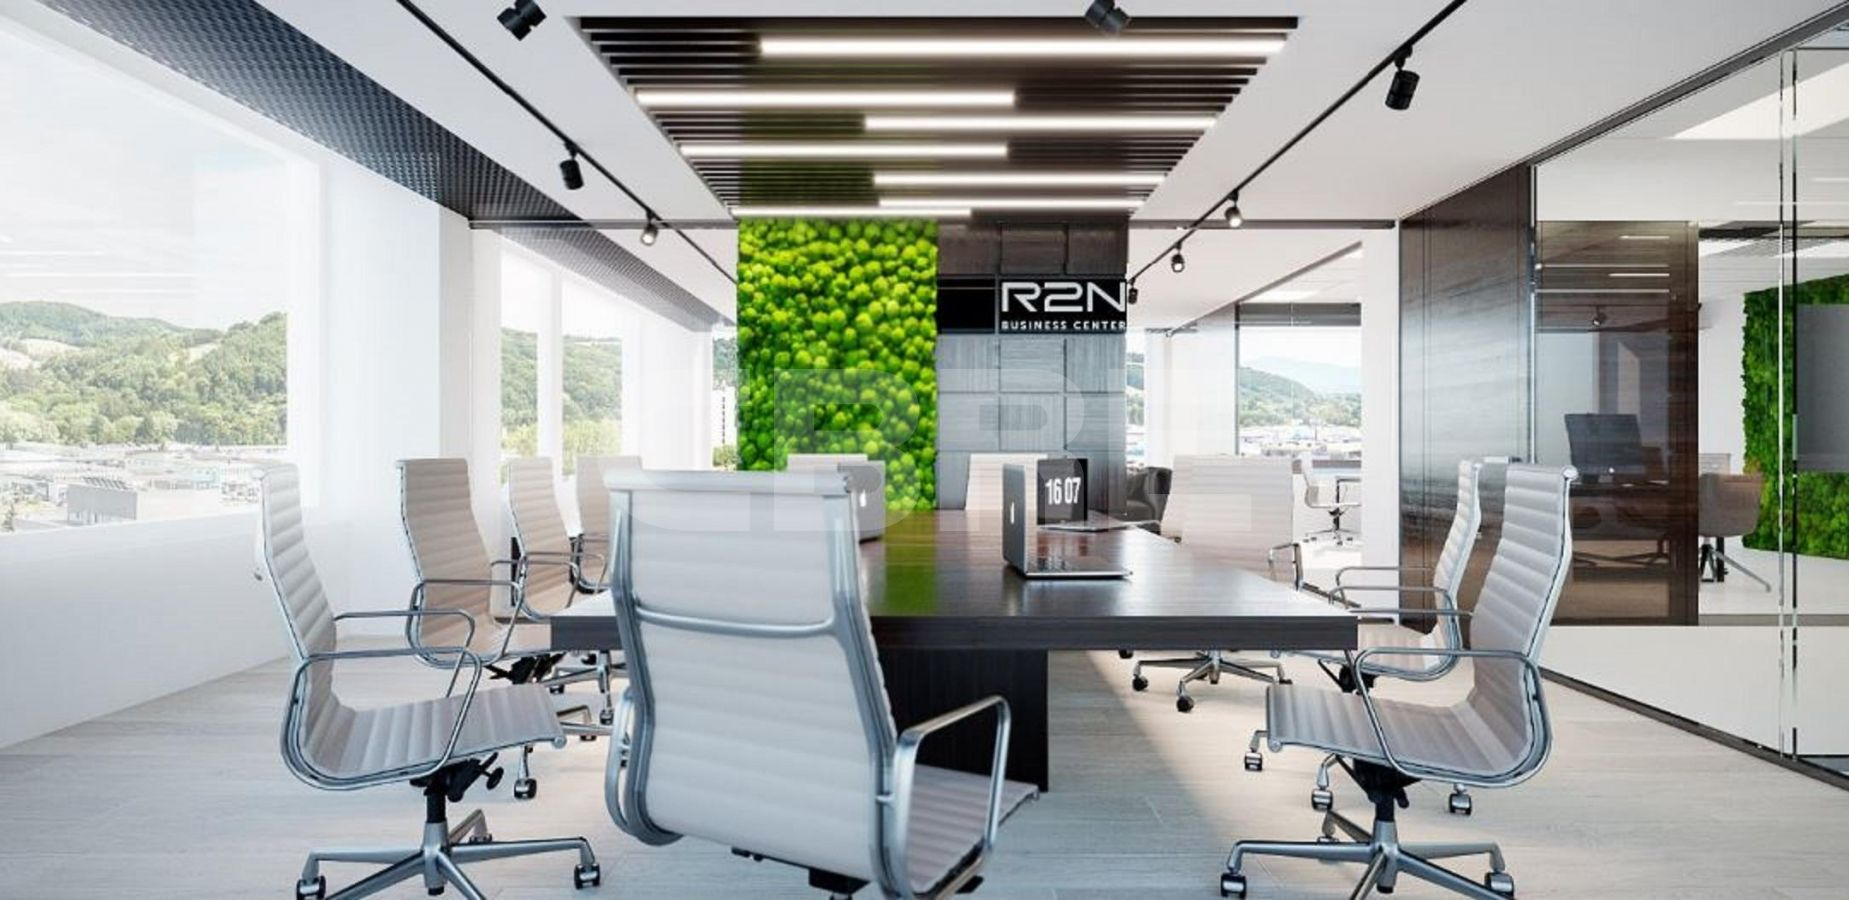 R2N Business Center, Banská Bystrica | Offices for rent by CBRE | 3